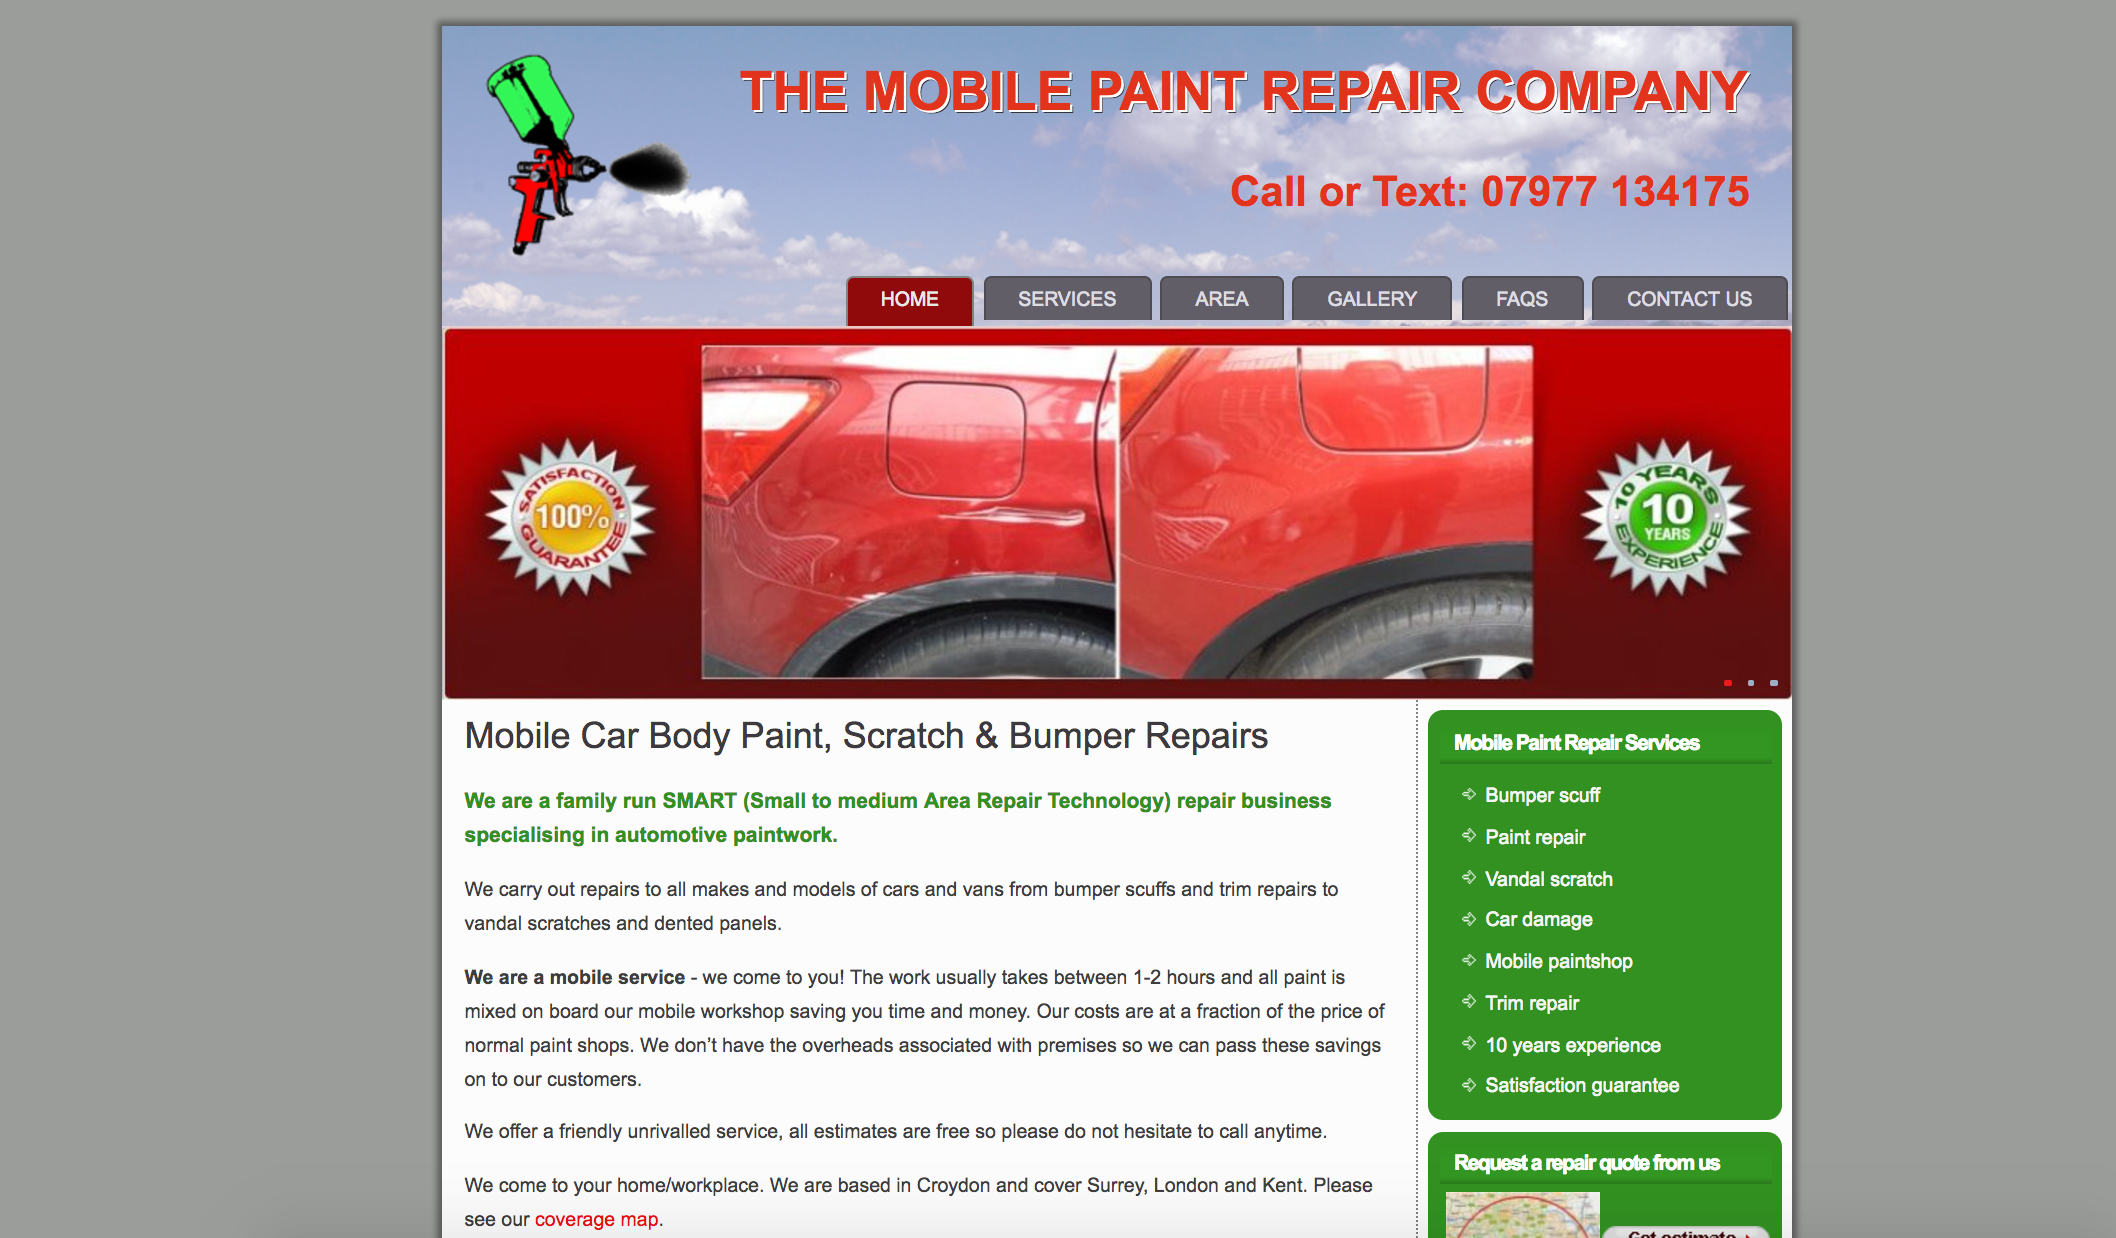 The Mobile Paint Repair Company